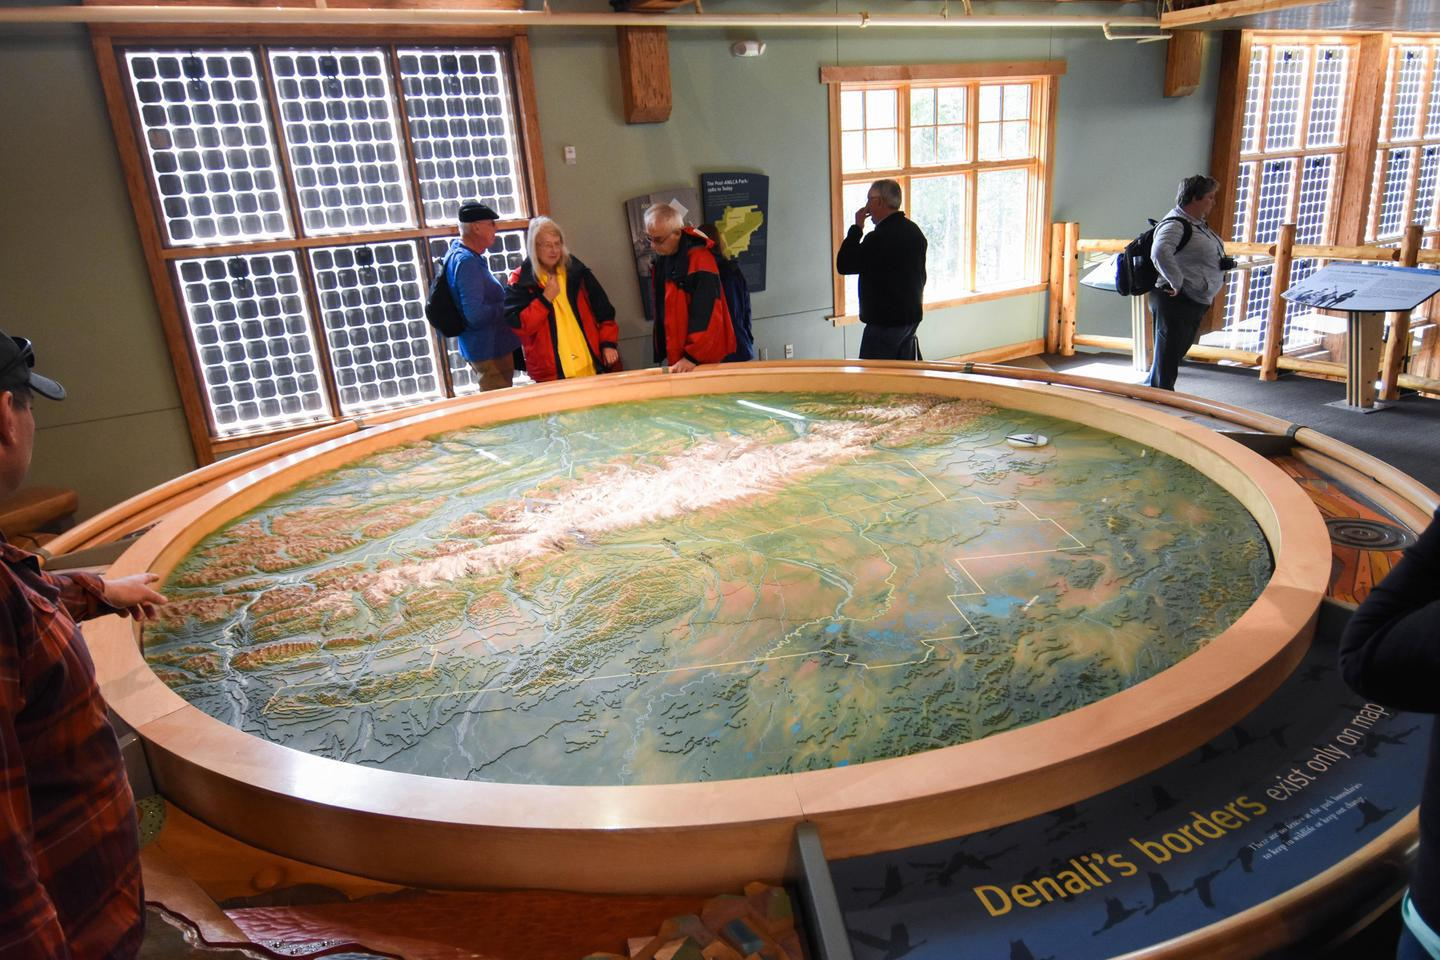 Denali Relief MapOne of the features of the Denali Visitor Center is a relief map that illustrates the Alaska Range and its highest peak, Denali